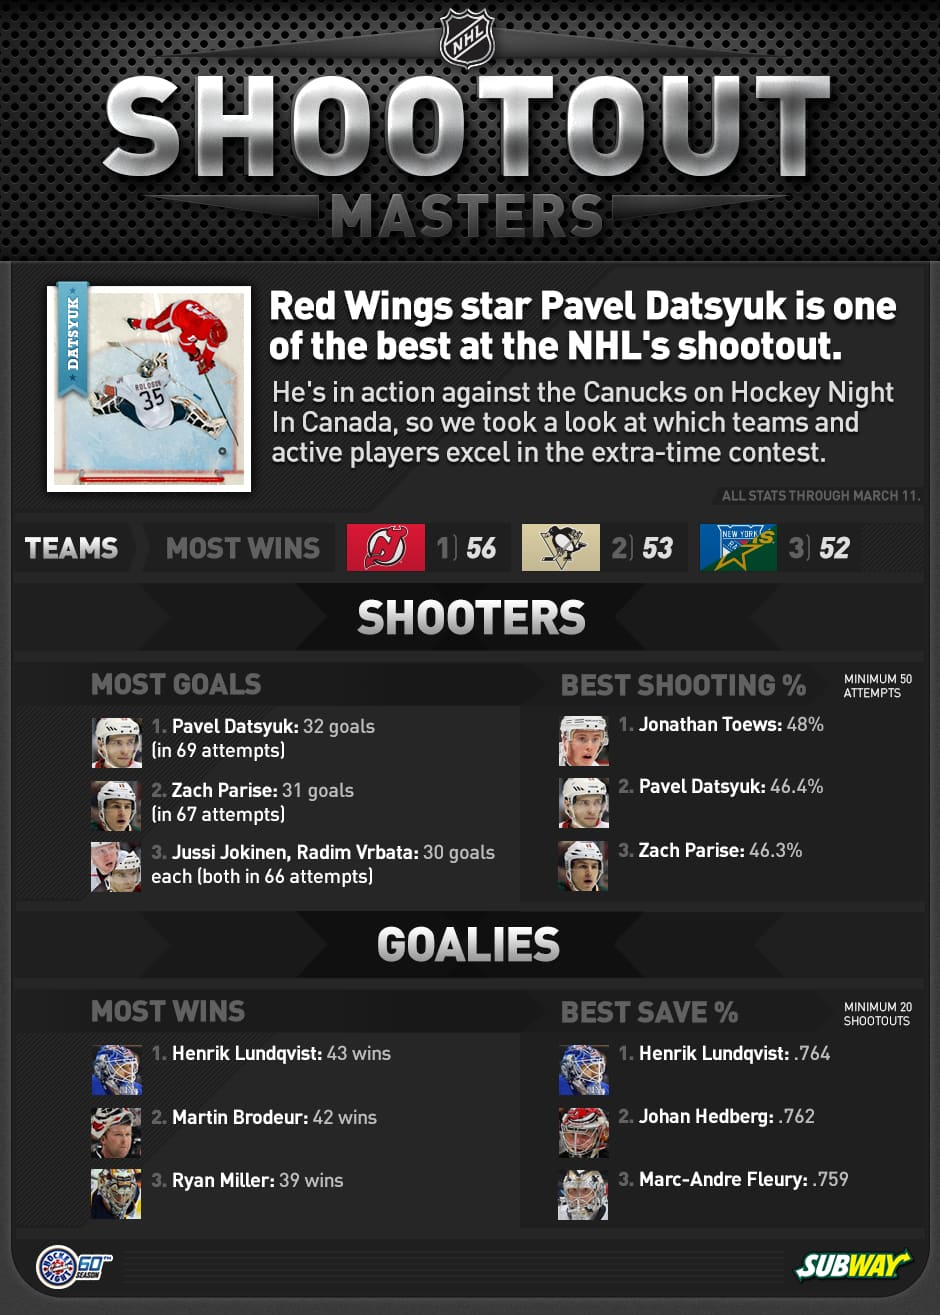 The top teams, shooters and goalies in the NHL's shootout tiebreaker.